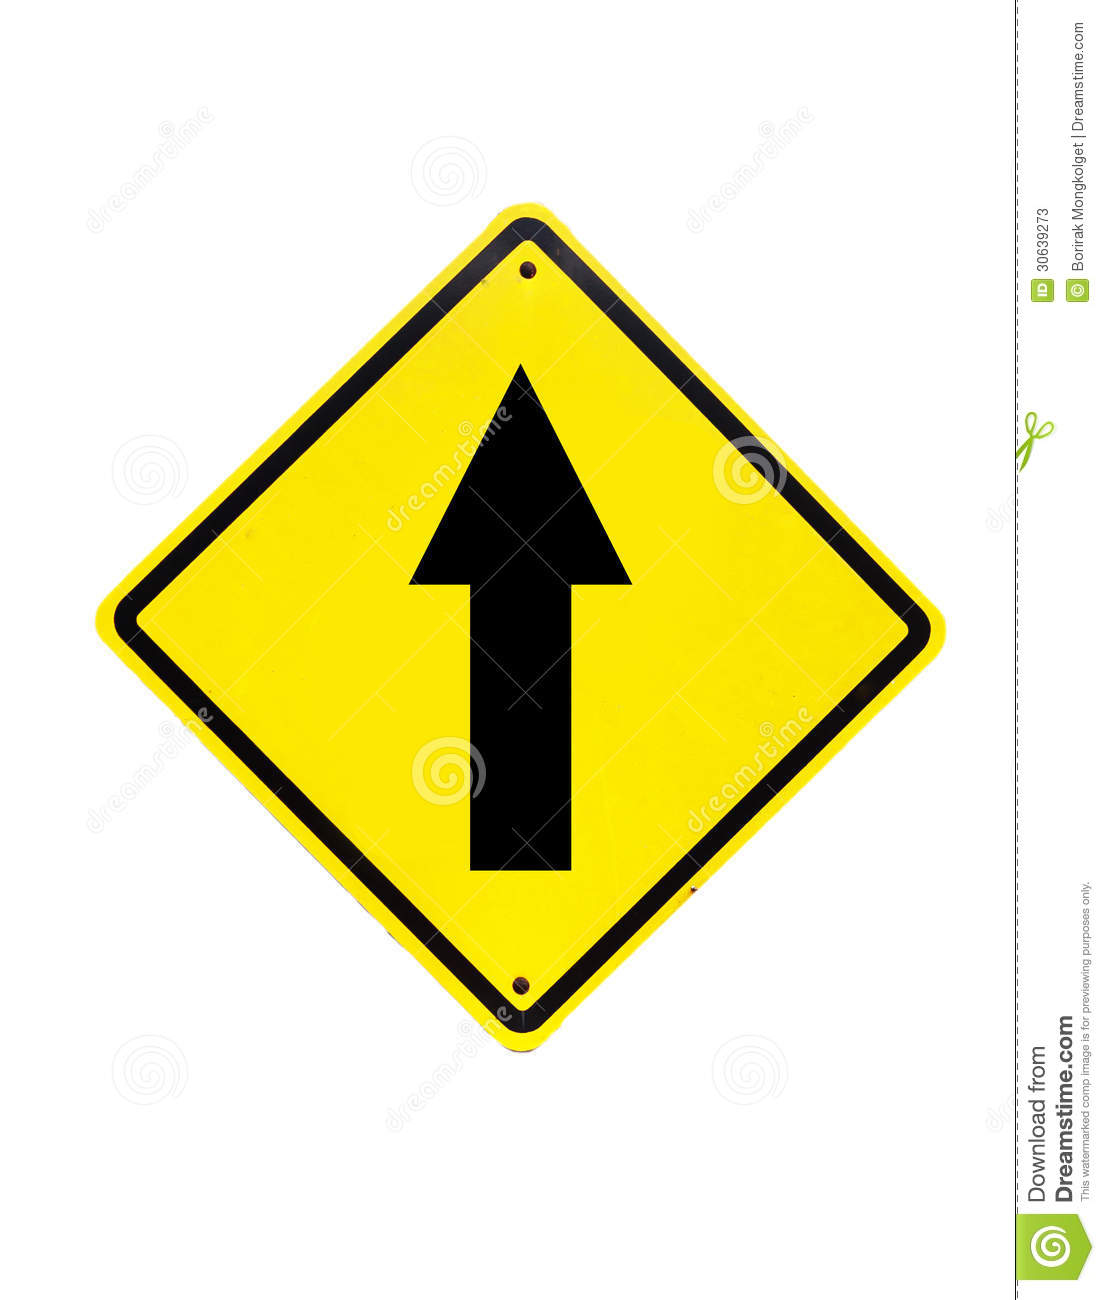 Traffic signs for driving test in bangalore dating 3